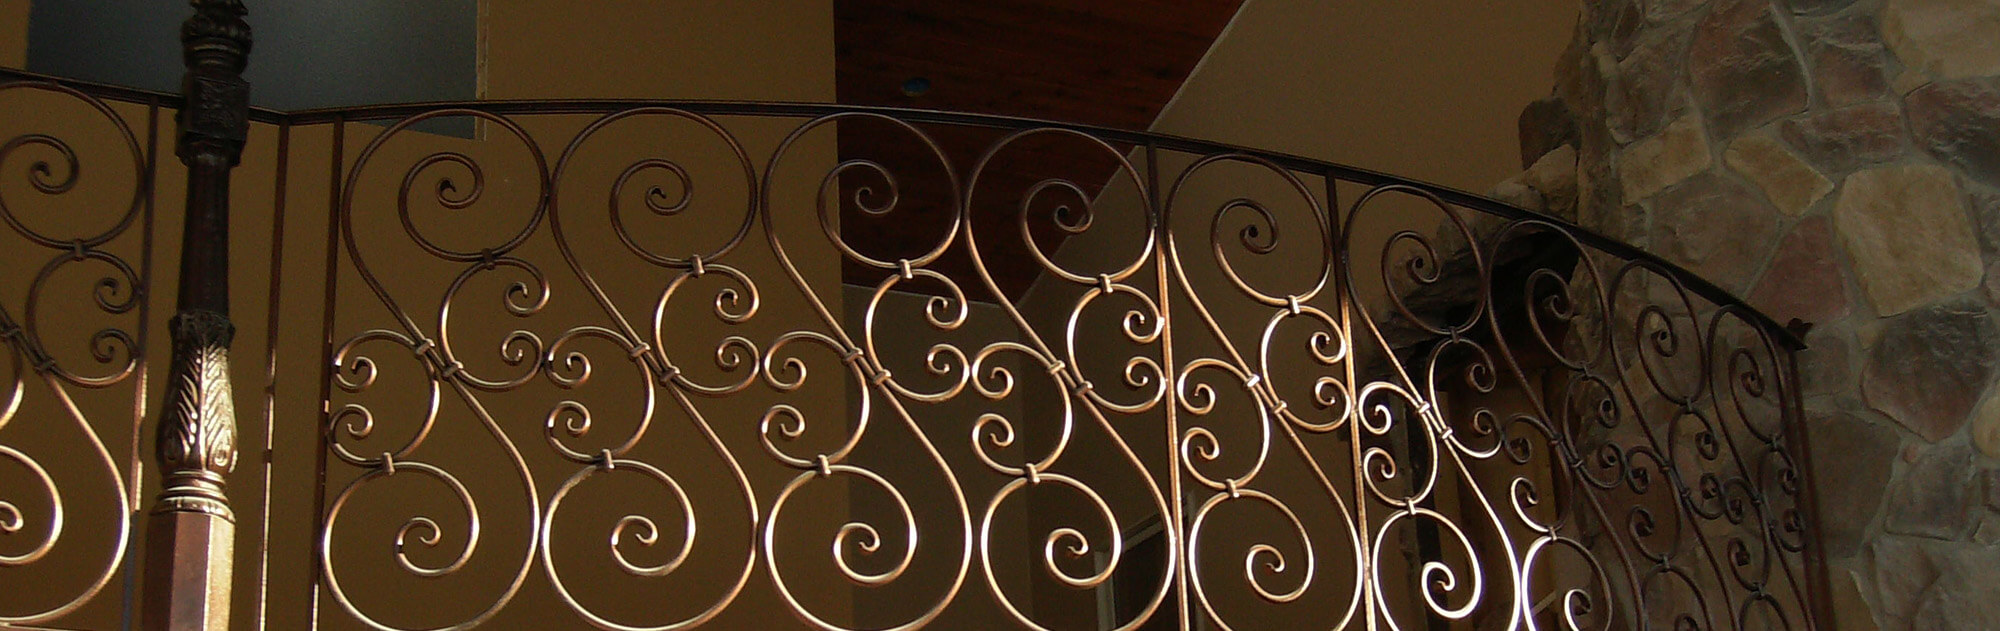 Custom wrought iron balcony railing featuring scroll balusters in a copper powder coated finish